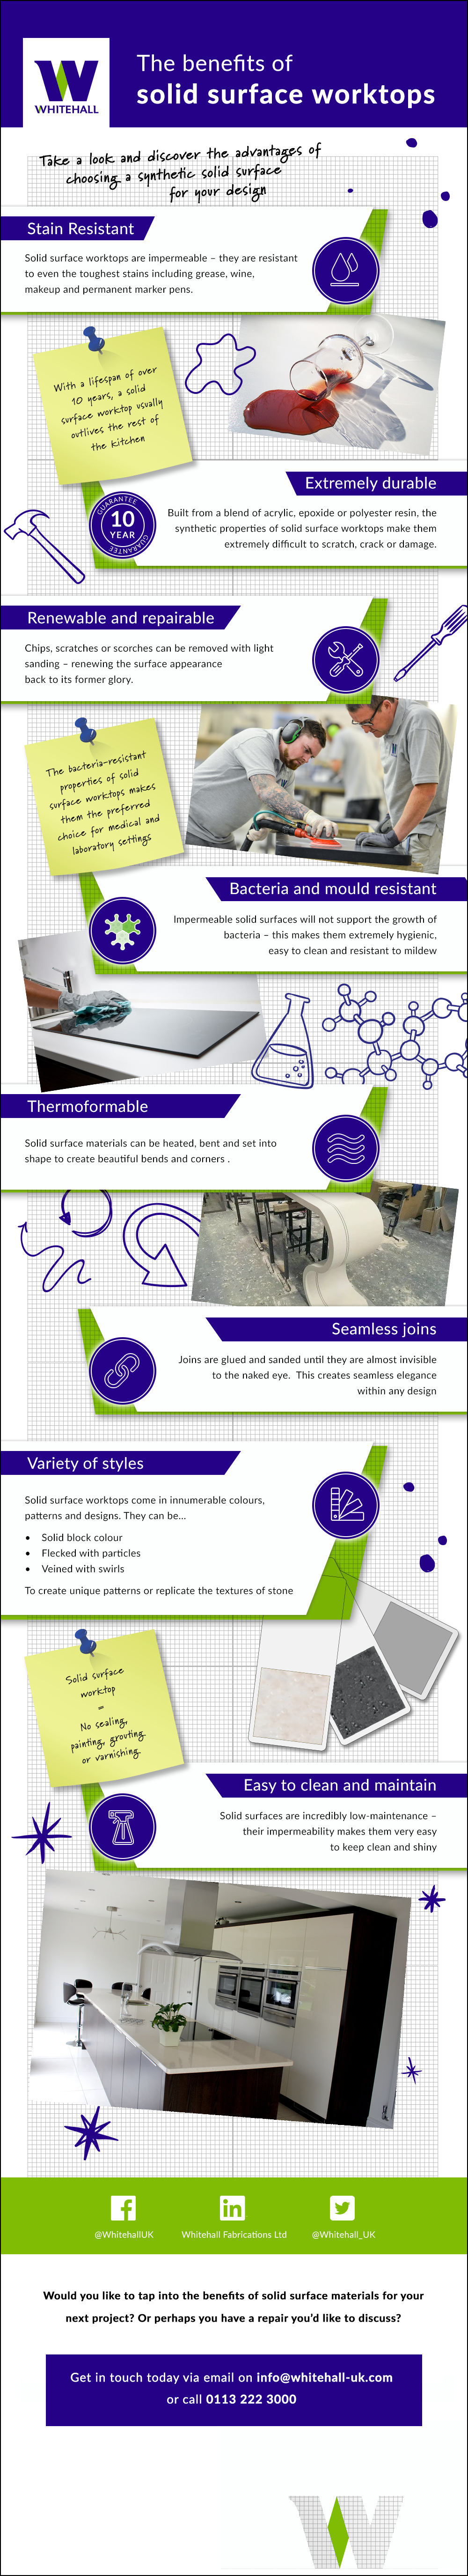 Whitehall-infographic-the-benefits-of-solid-surface-worktops